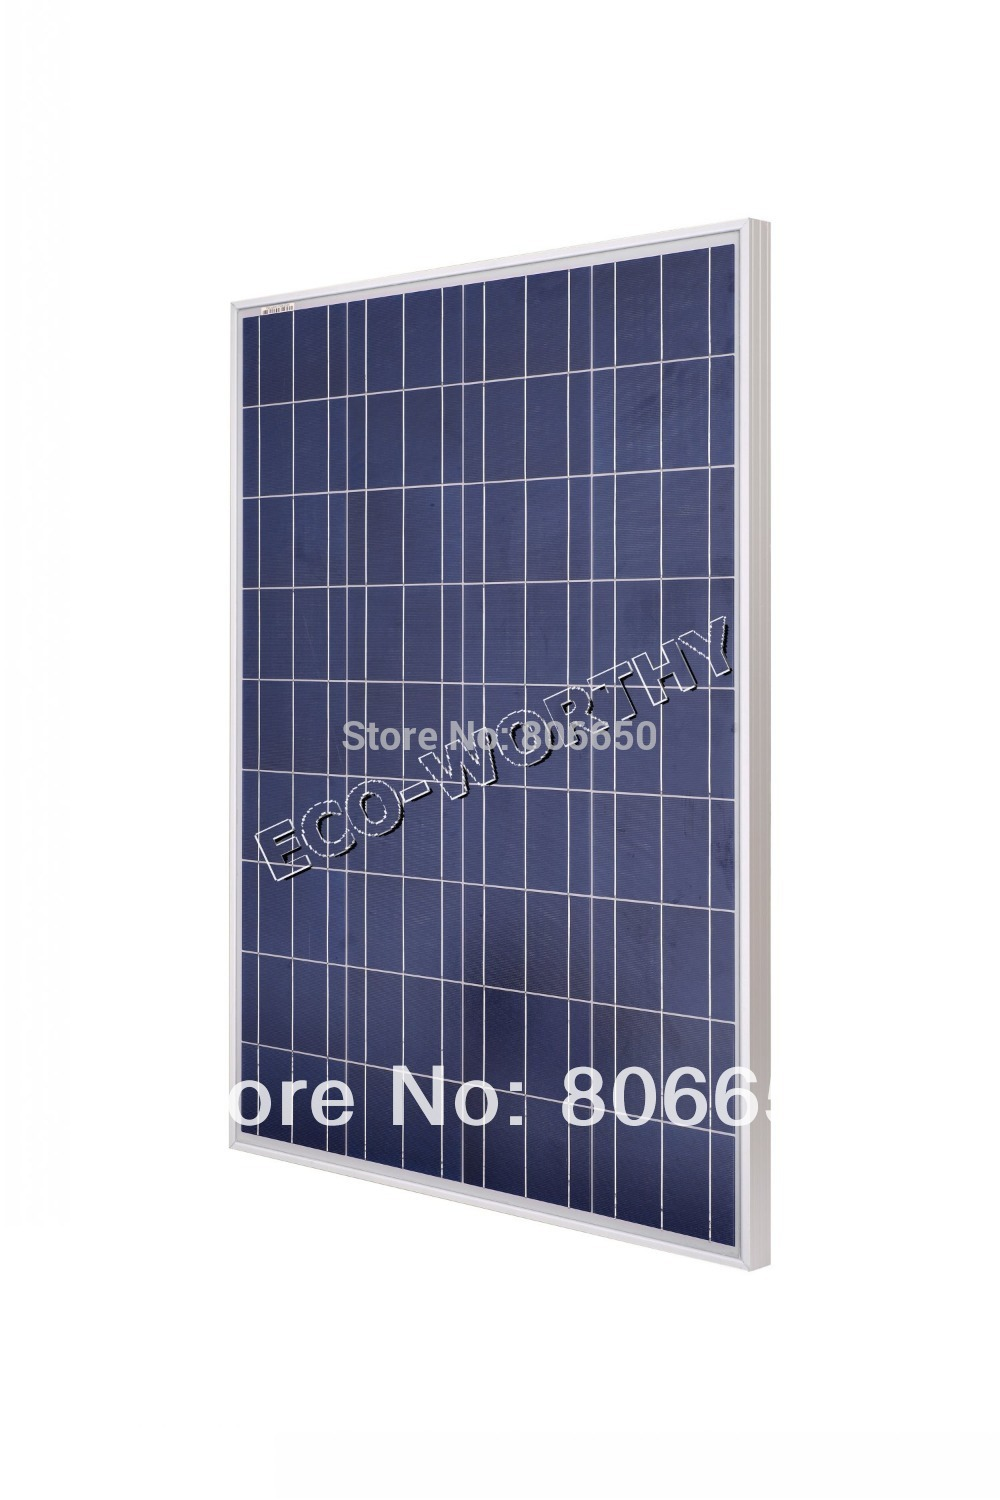 Home solar systerm COMPLETE KIT 300W Solar Panel cells off grid system(China (Mainland))